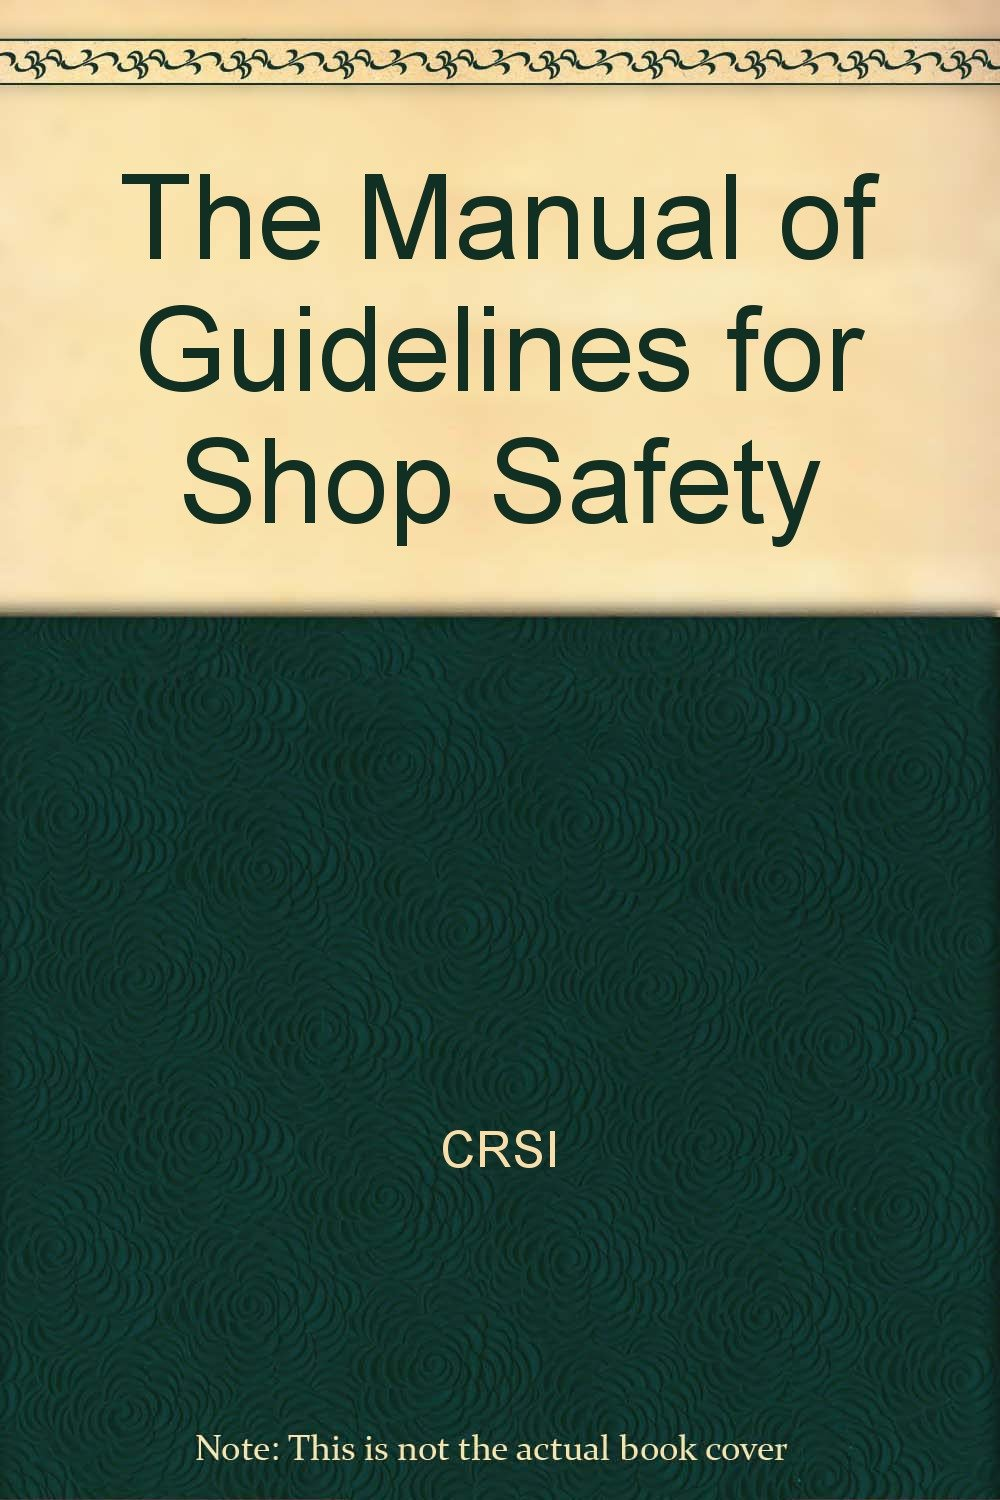 Download The Manual of Guidelines for Shop Safety PDF